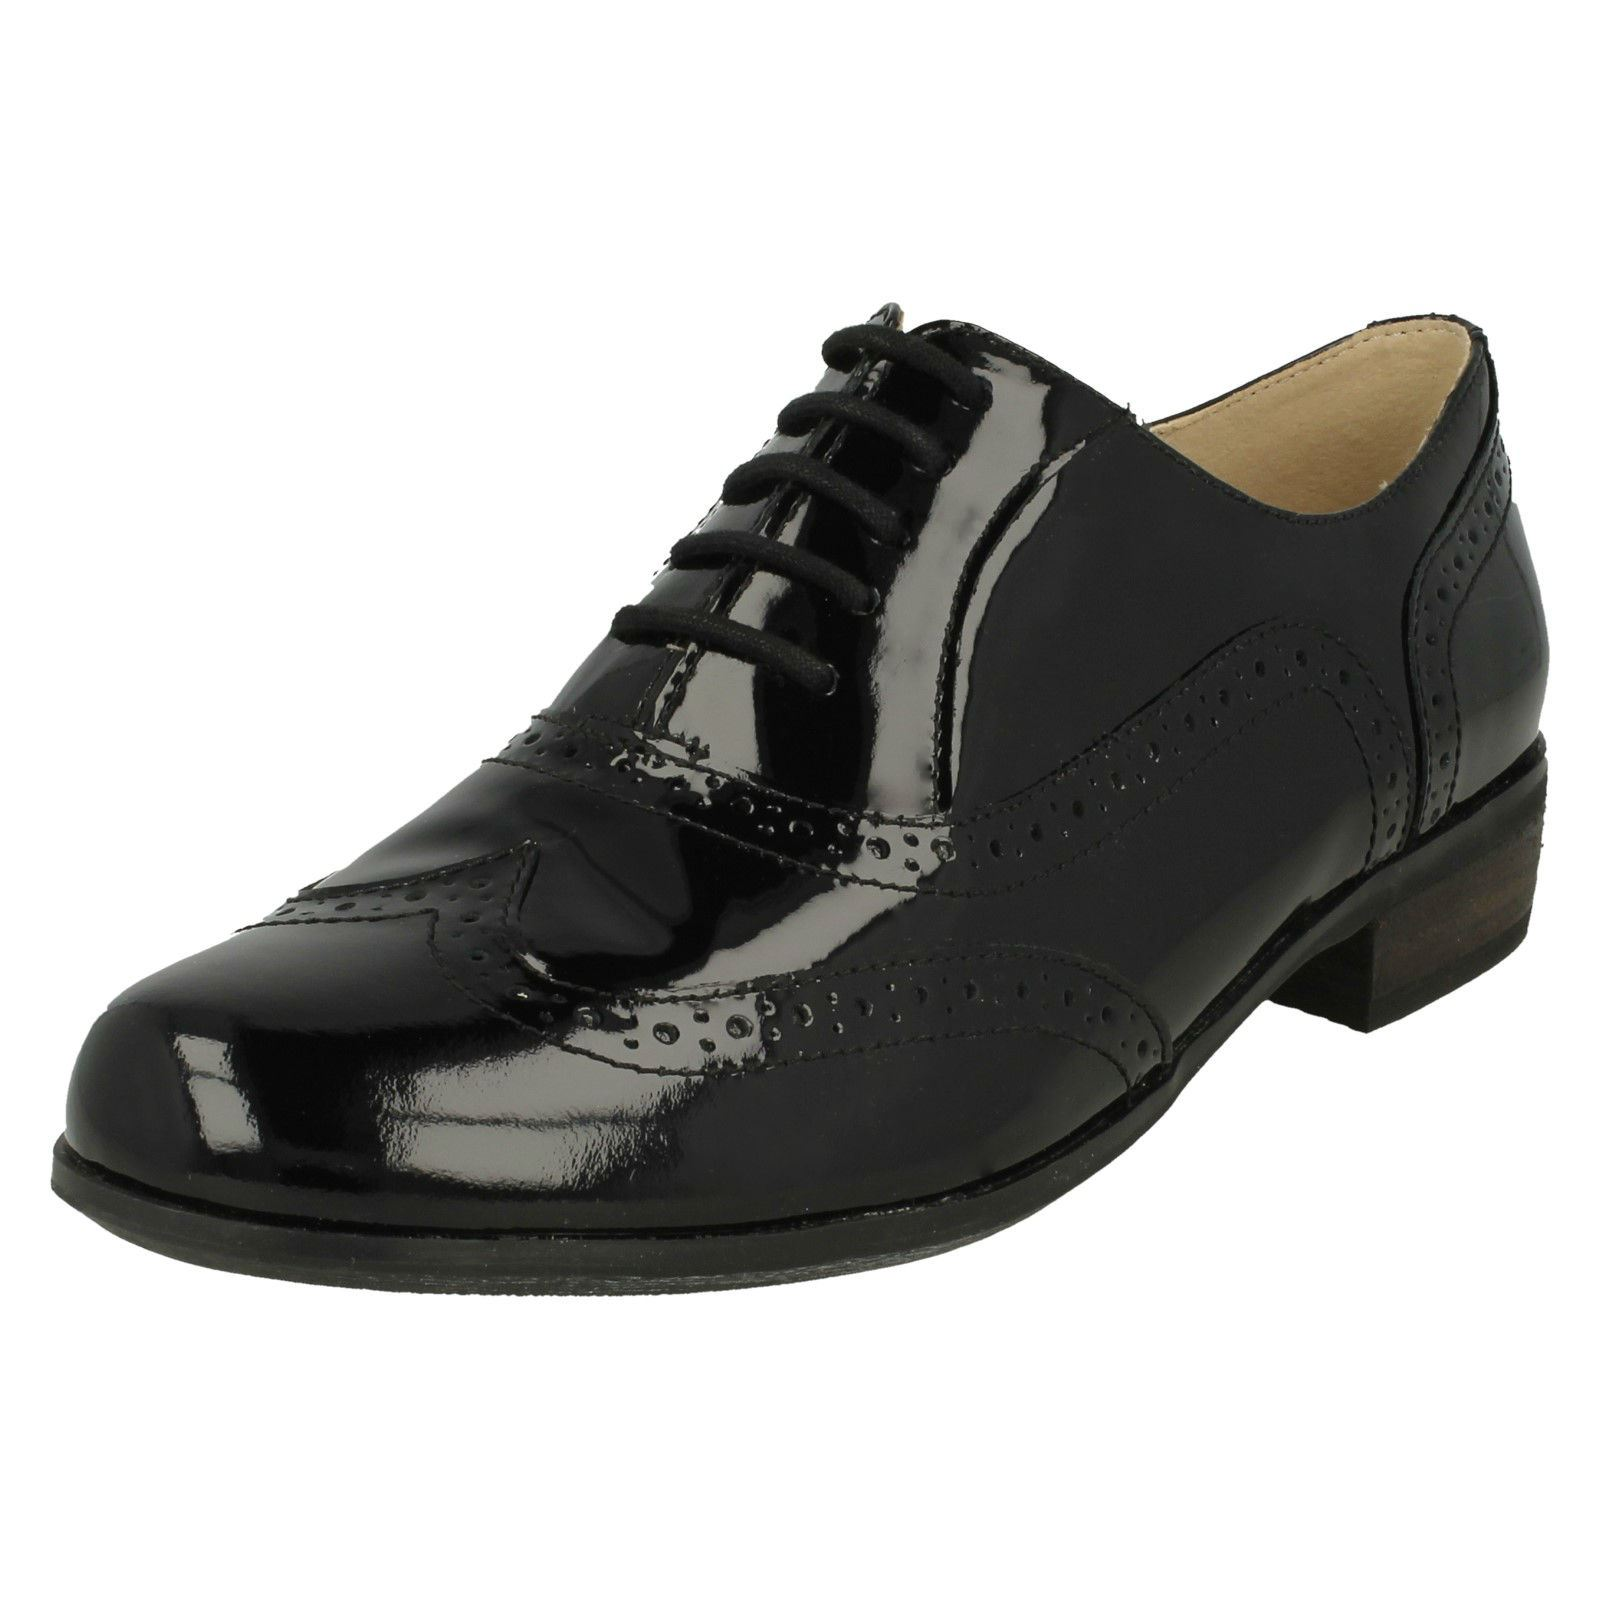 3b3b1398895 Ladies Clarks Lace up Smart Brogue Shoes Hamble Oak 3 UK Black Patent E.  About this product. Picture 1 of 10  Picture 2 of 10 ...